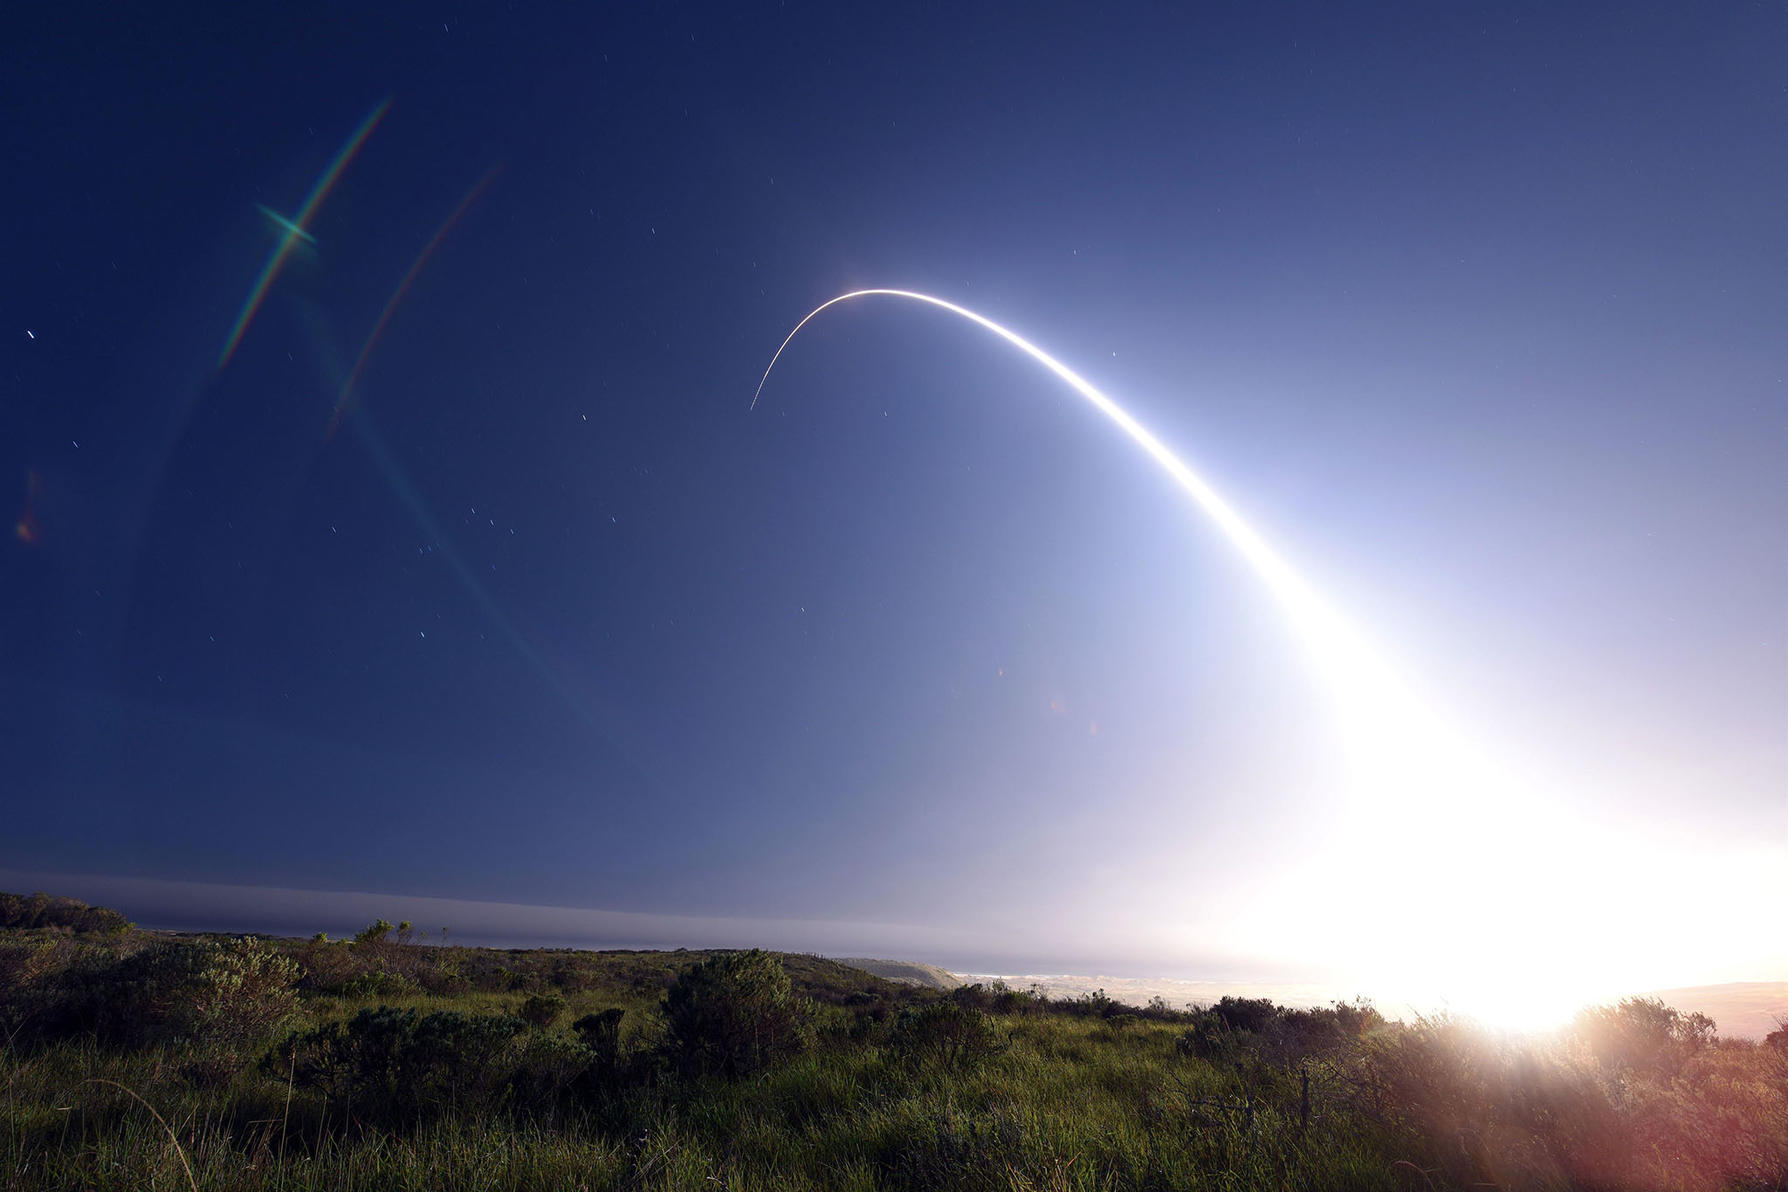 An unarmed Minuteman III intercontinental ballistic missile (ICBM), equipped with a test reentry vehicle, is launched during an operational test at Vandenberg Air Force Base, California. (U.S. Air Force Photo by Senior Airman Kyla Gifford)